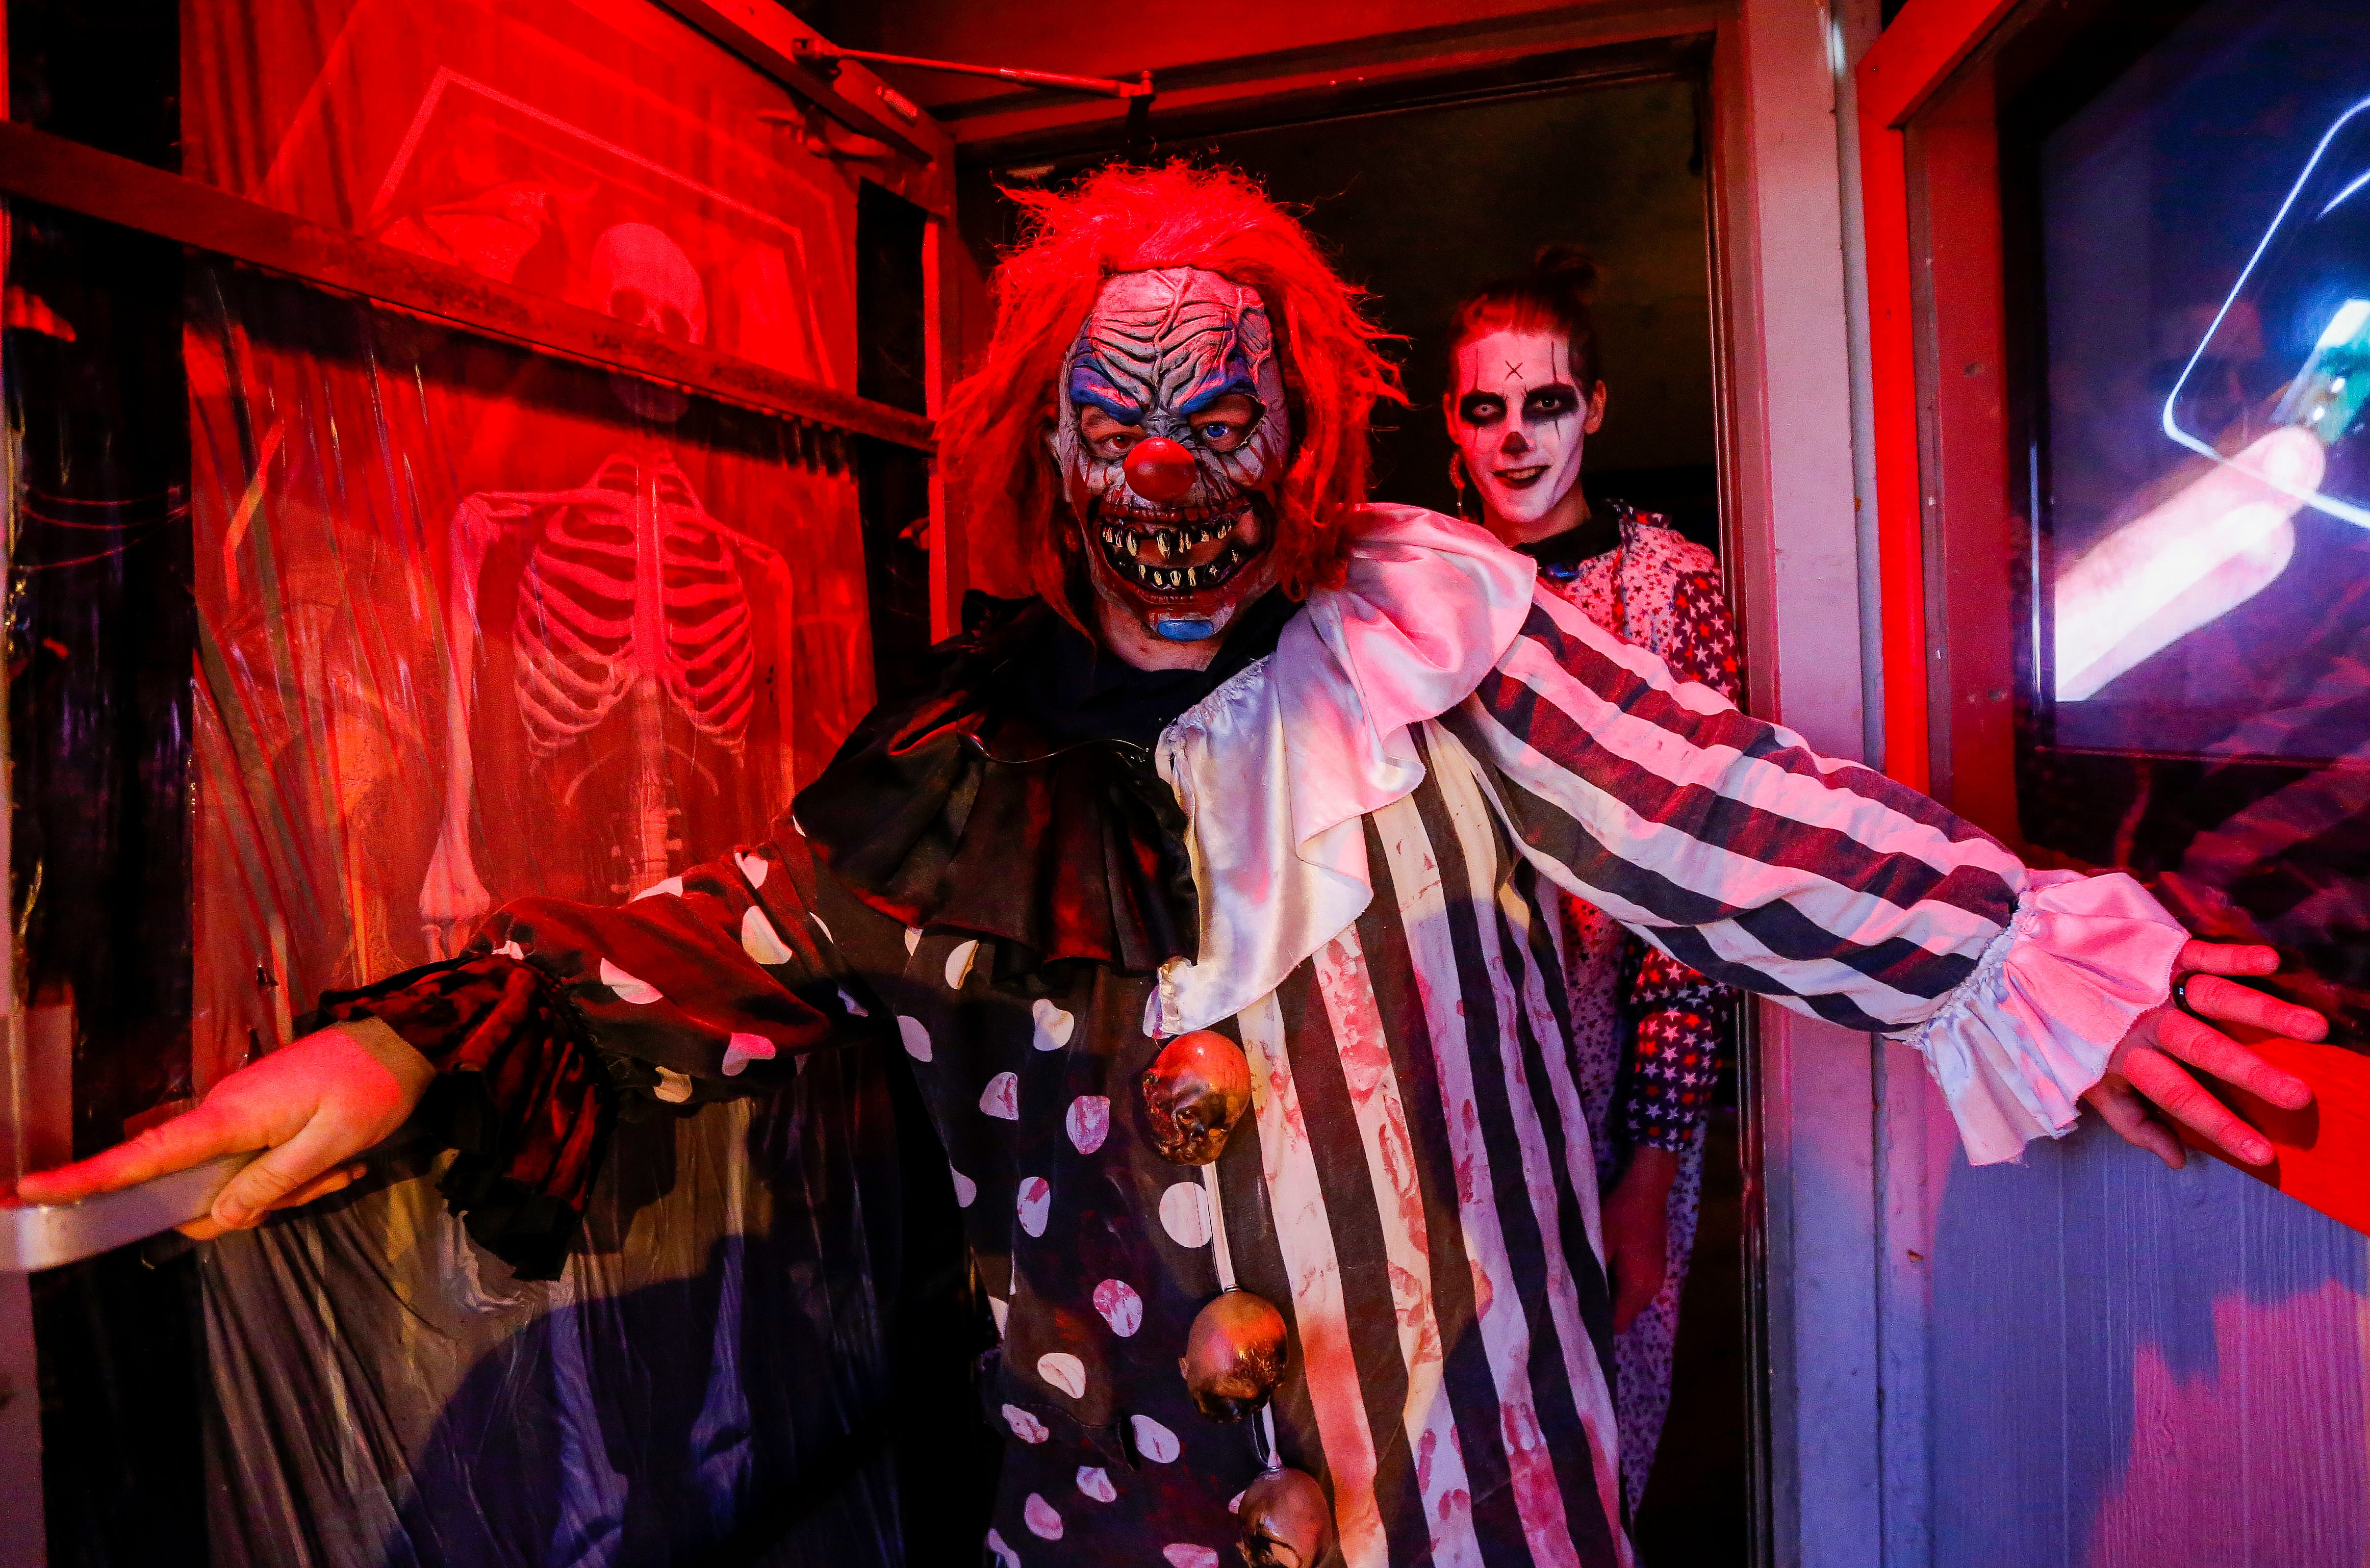 A pair of creepy clowns emerge from the entrance of the Hotel of Terror located at 334 N. Main St.